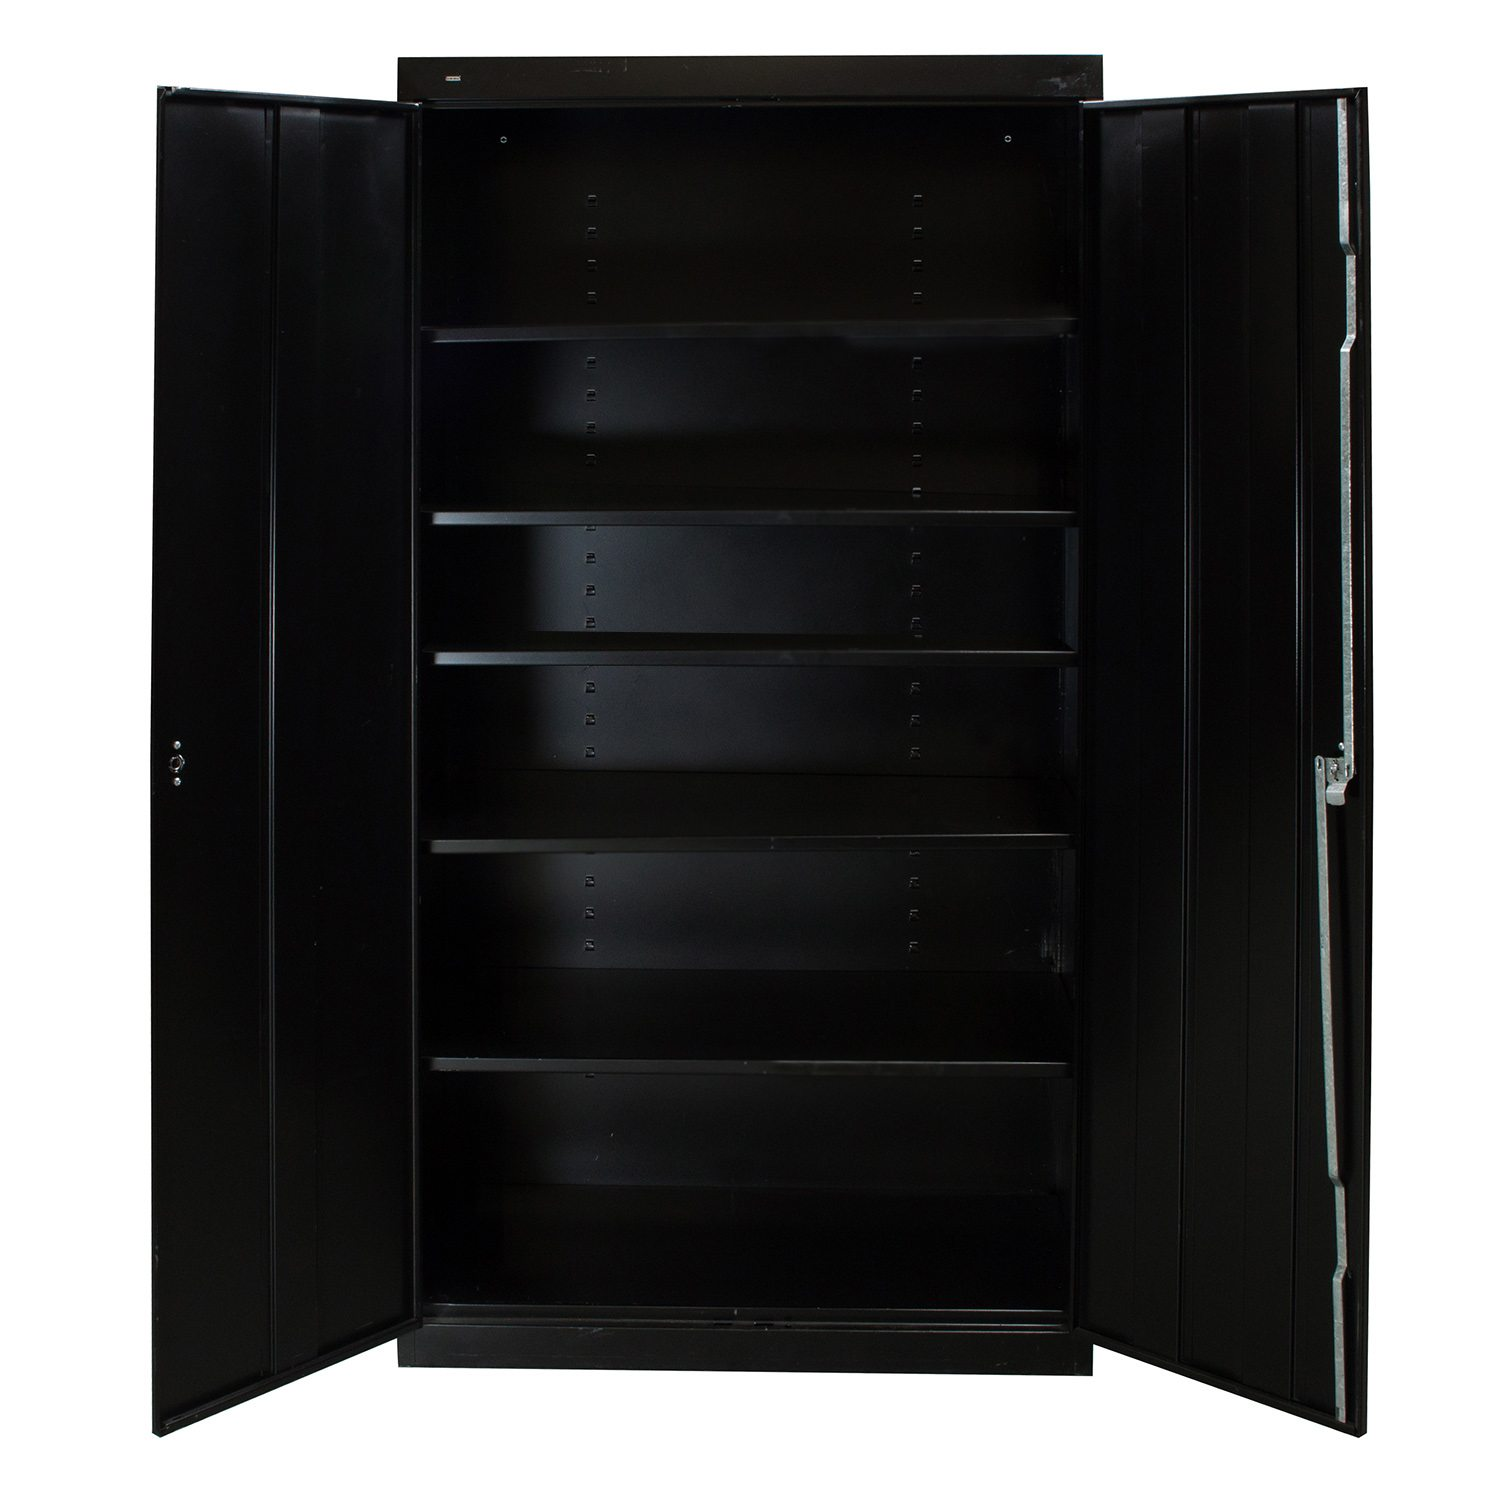 Hon Used Storage Cabinet 72 inch, Black